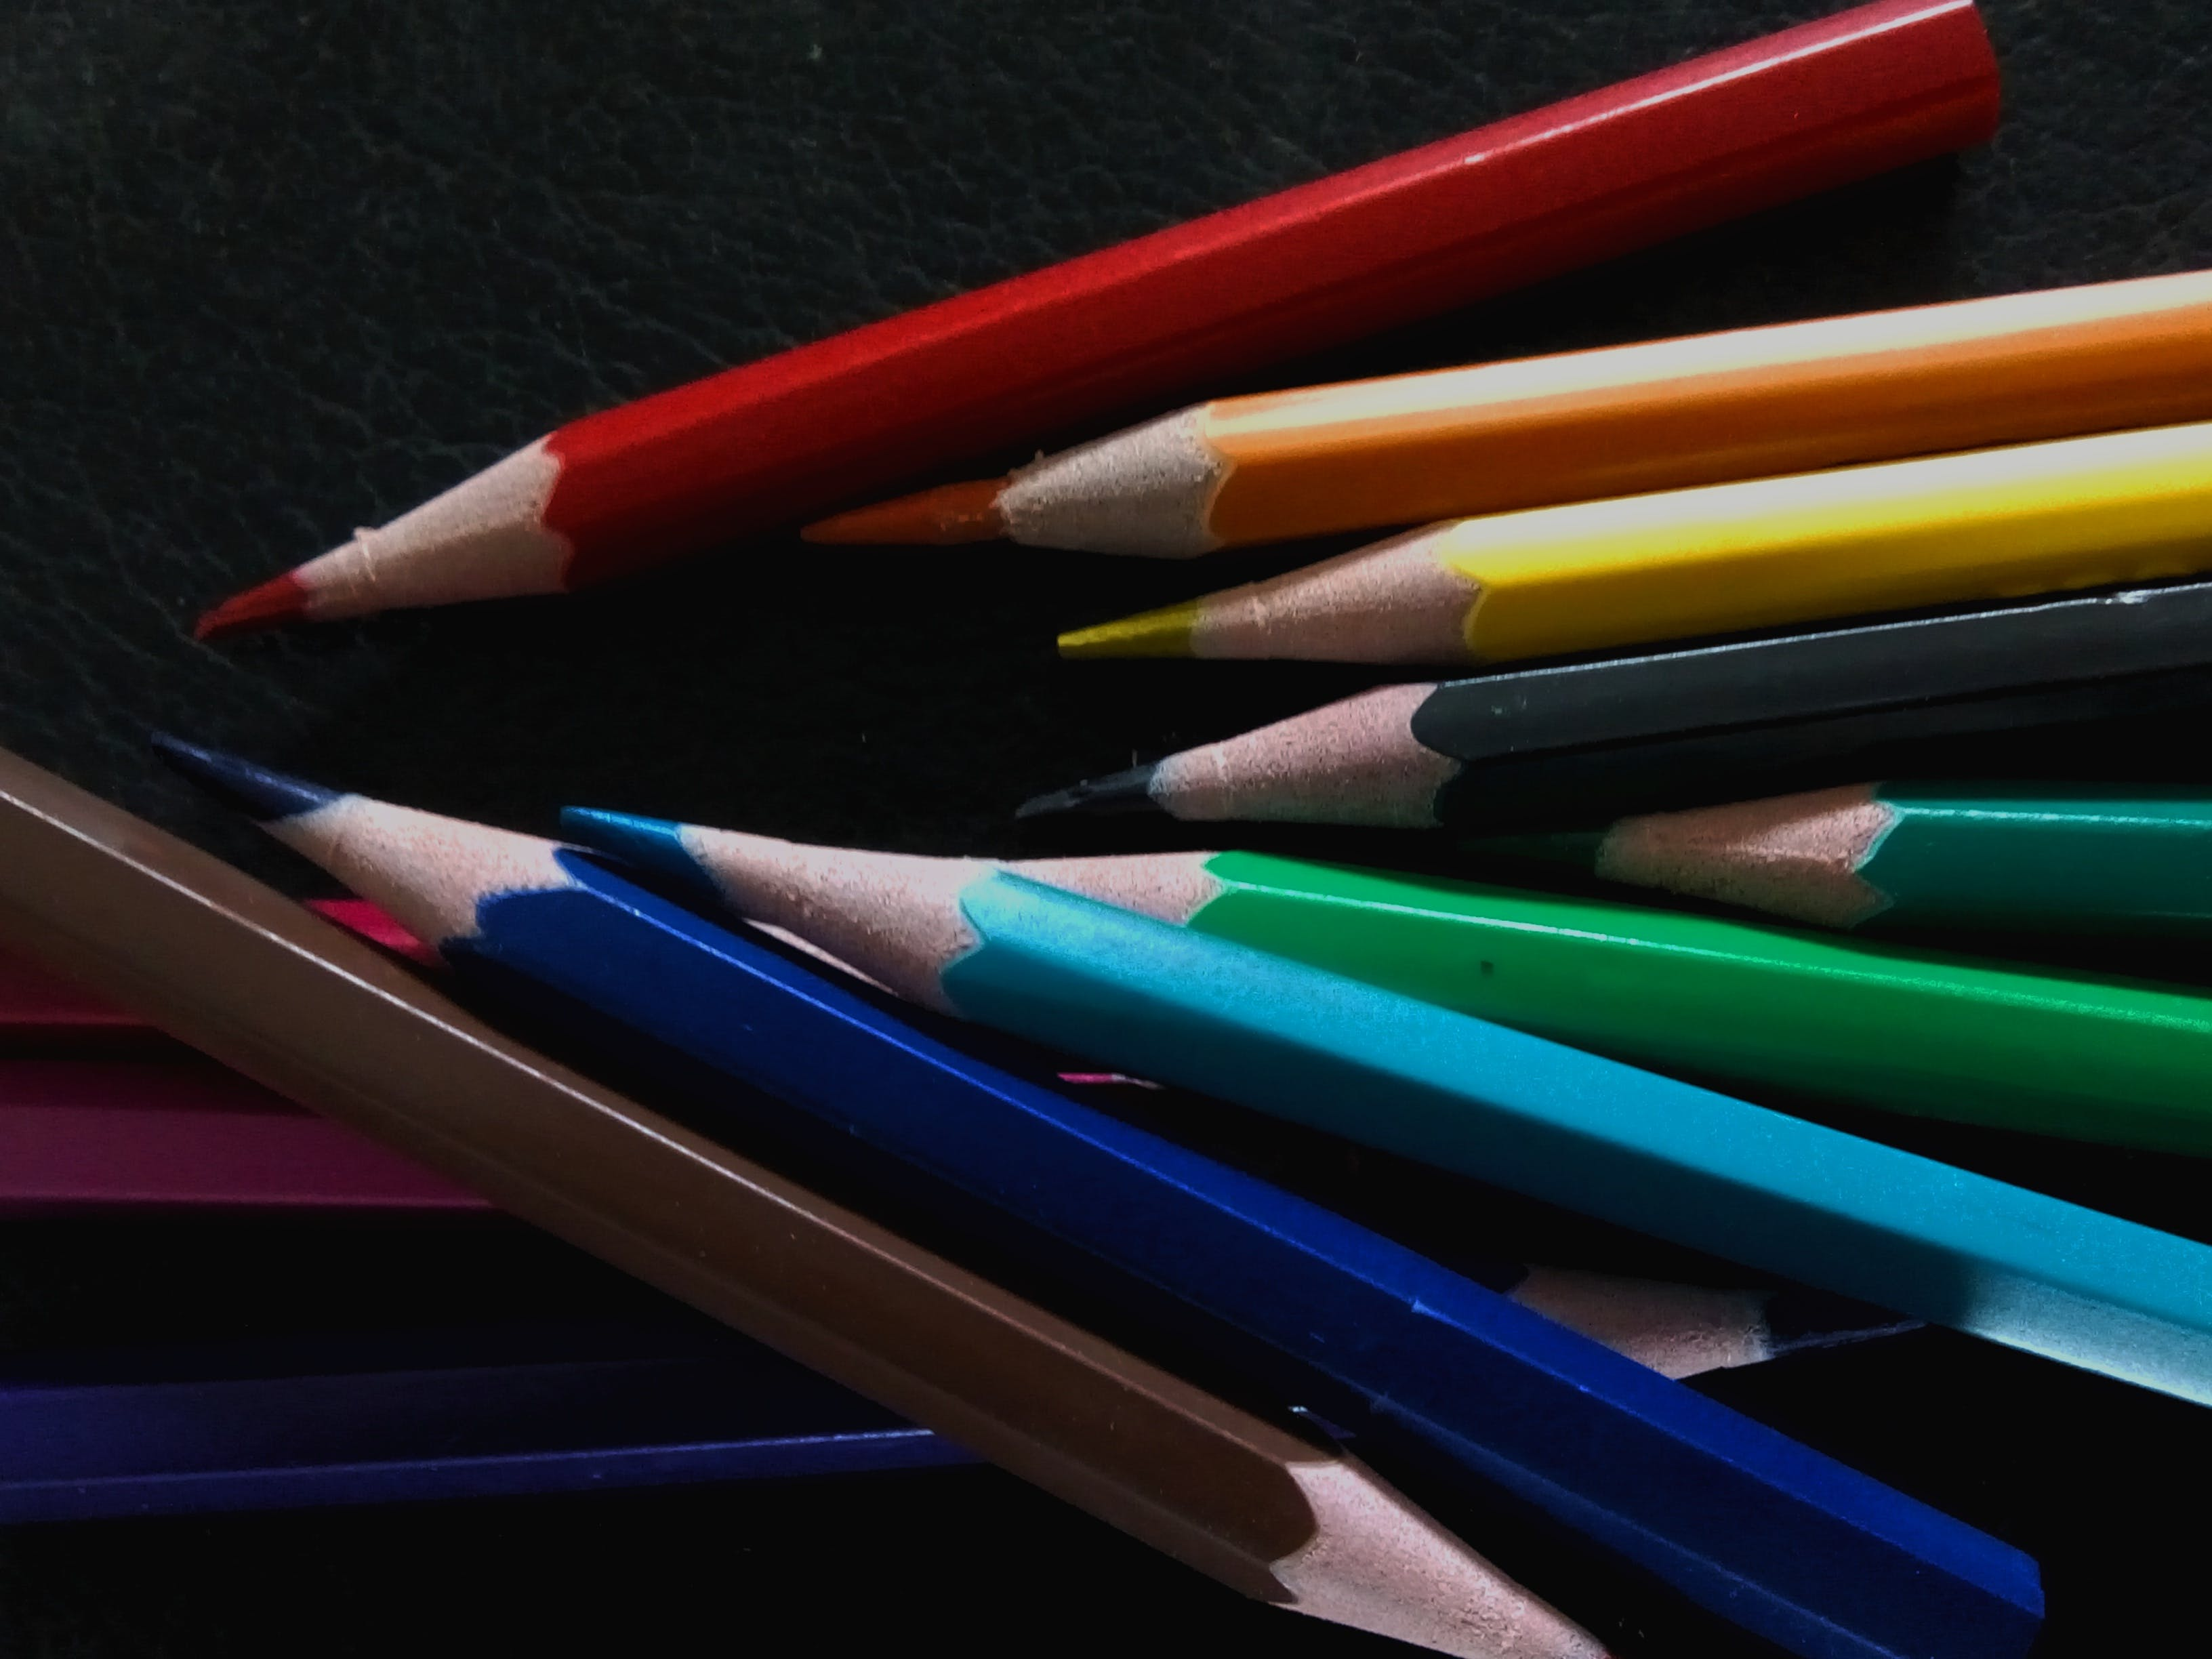 Free stock photo of color pencils, colored pencils, colors